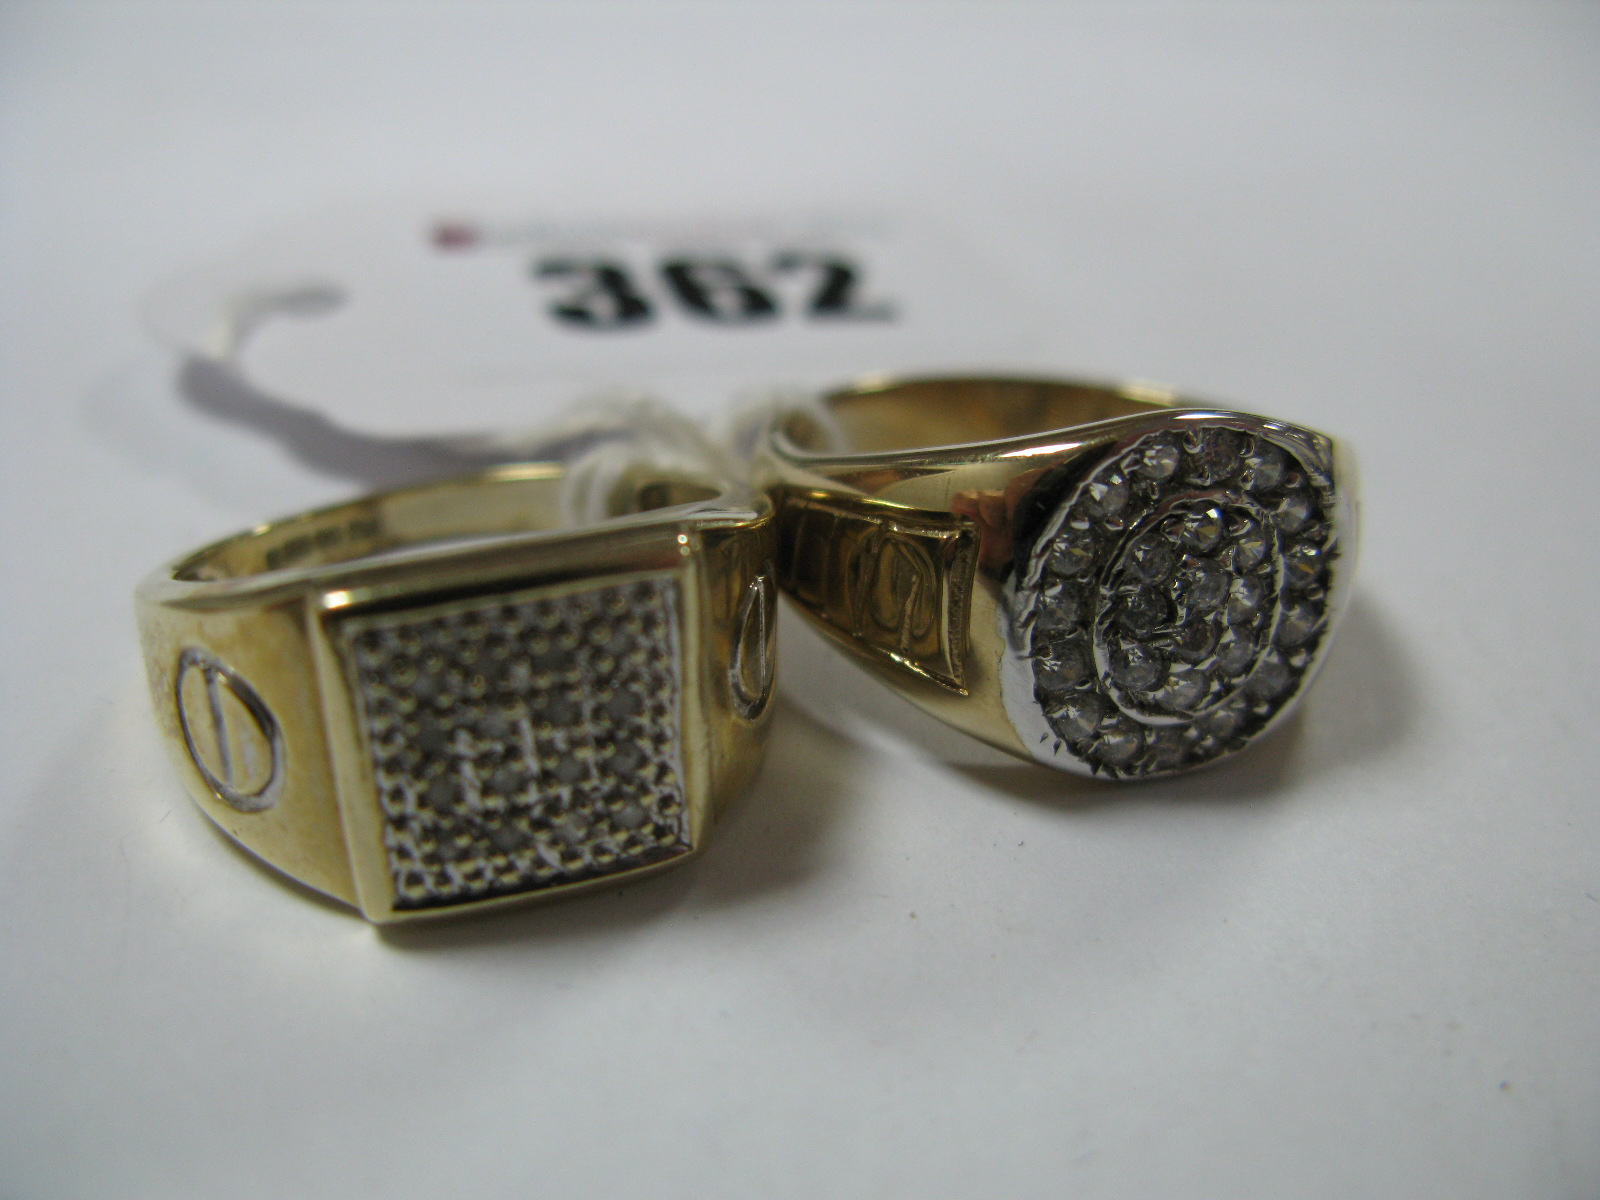 Lot 362 - A 9ct Gold Gent's Dress Ring, circular inset highlights to the centre, between textured shoulders,